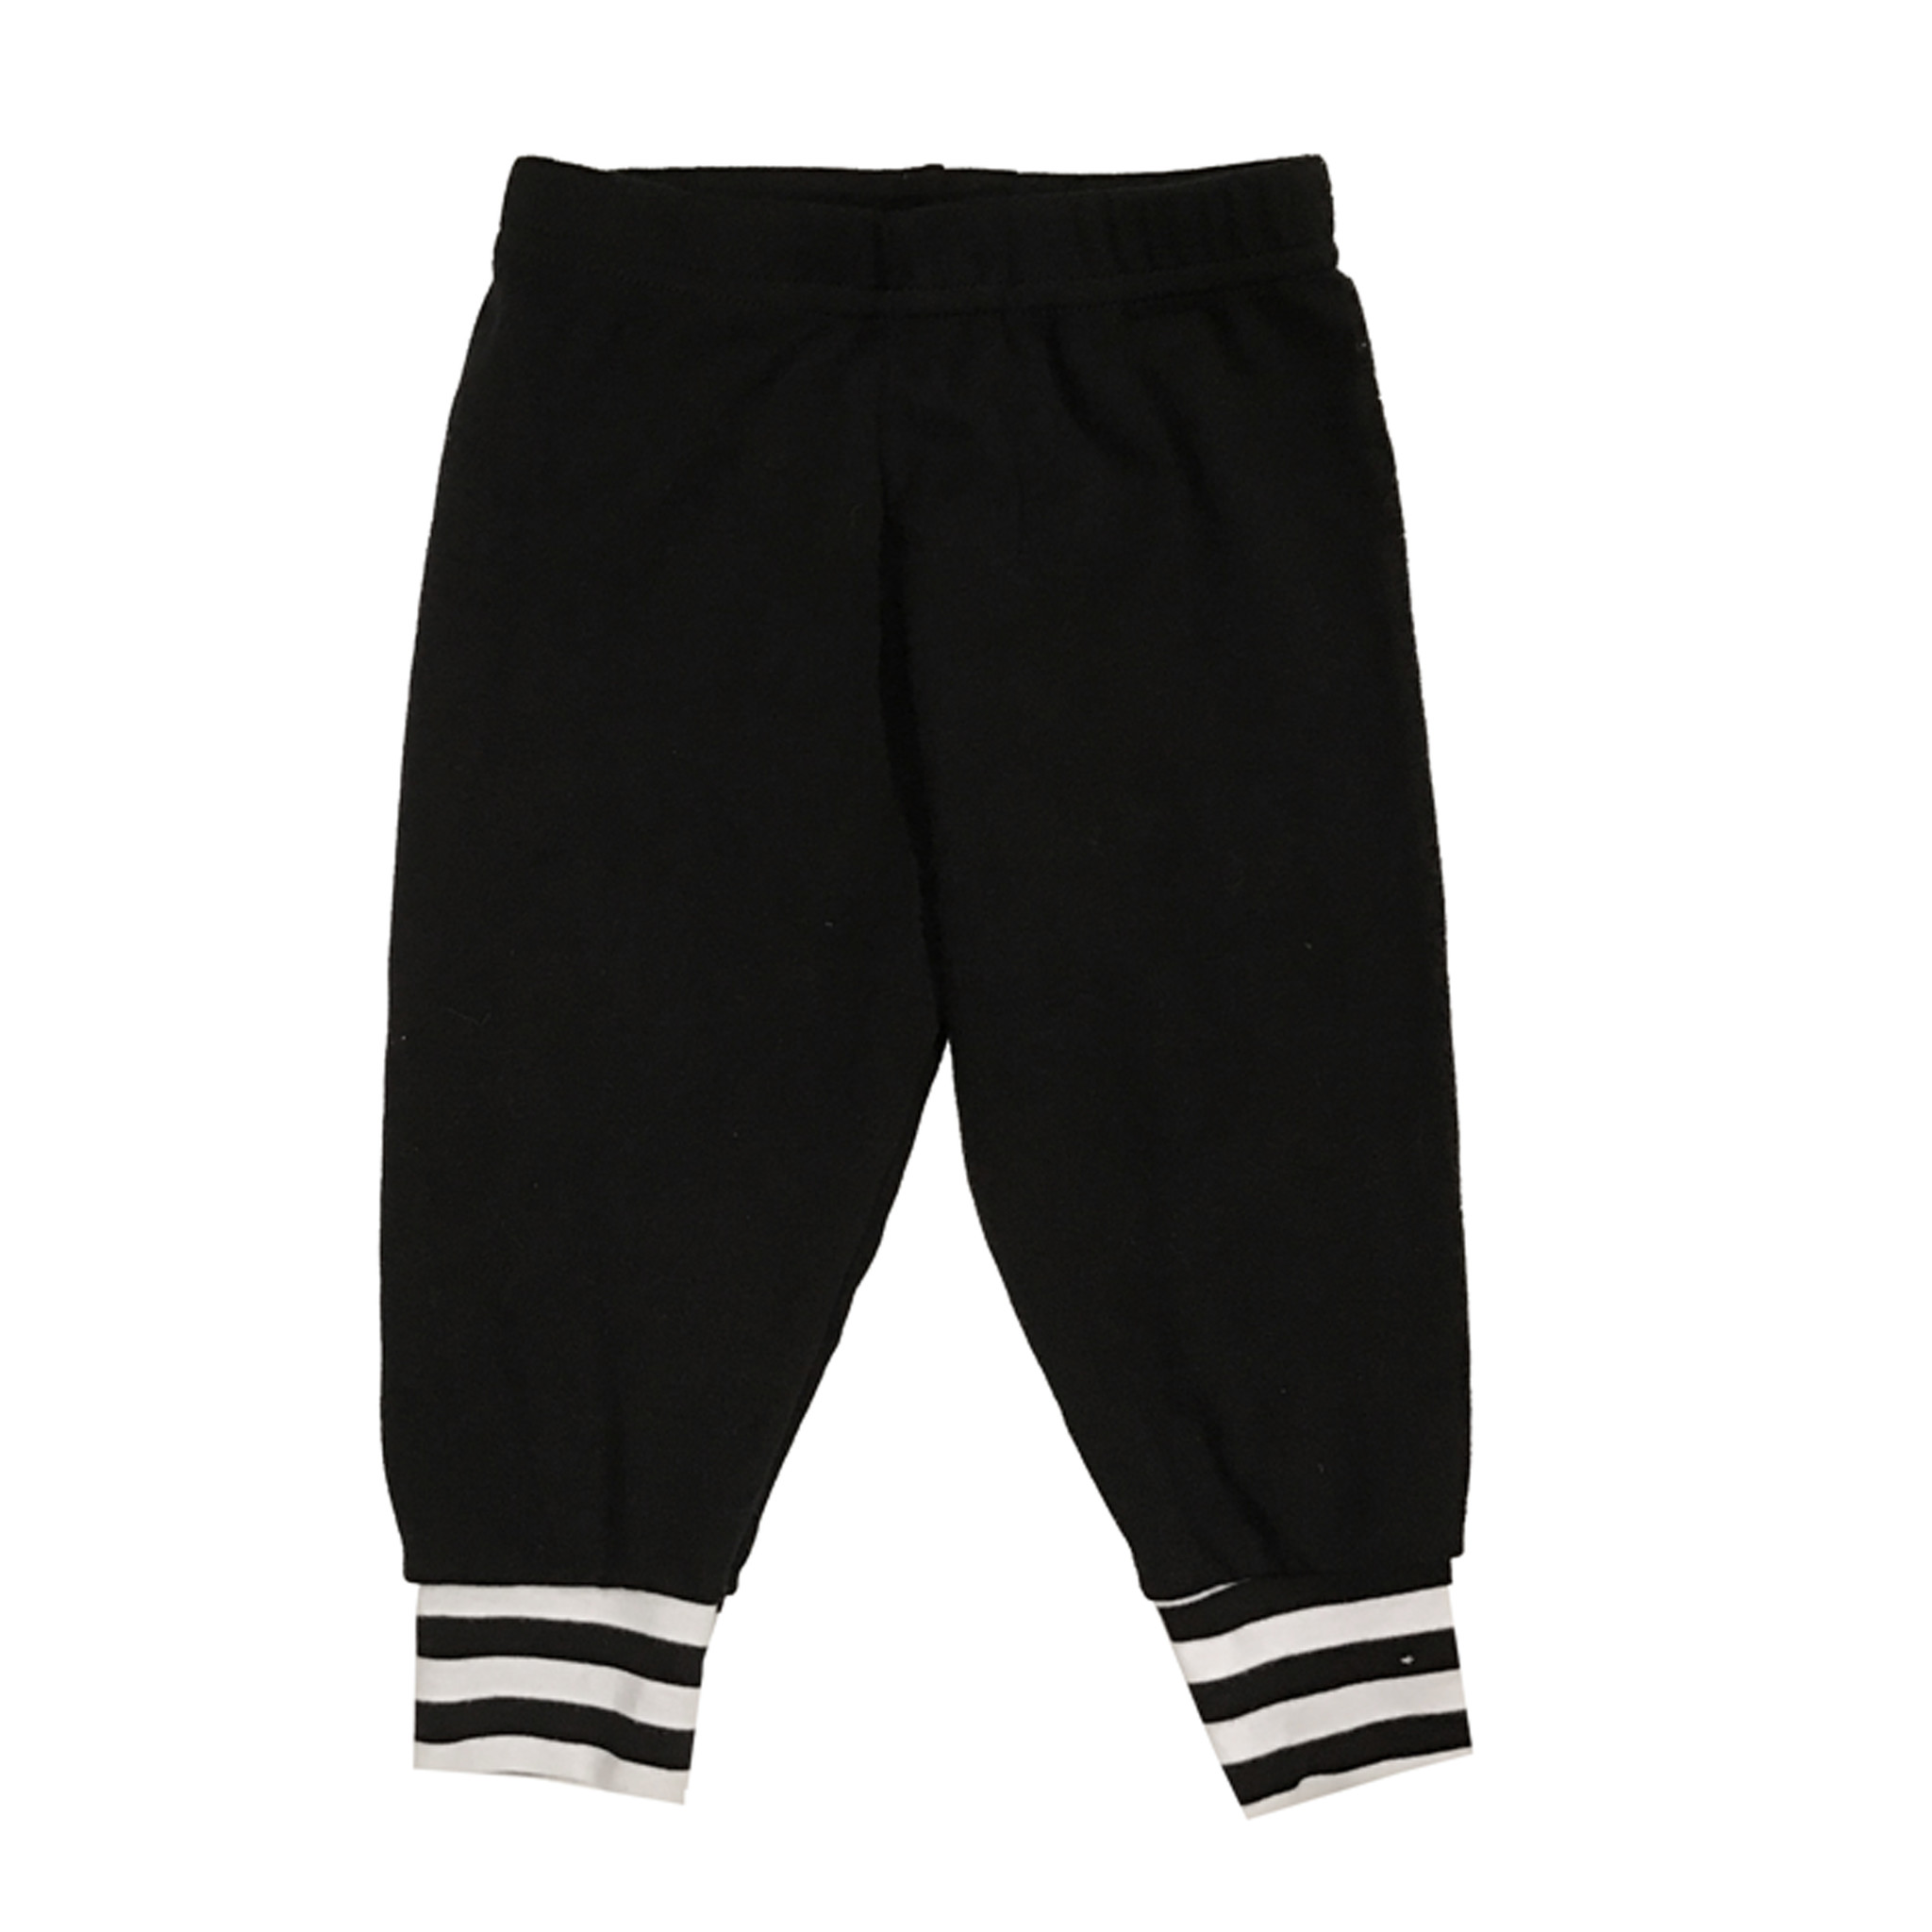 Small Change Black with White Stripe Cuff Pant